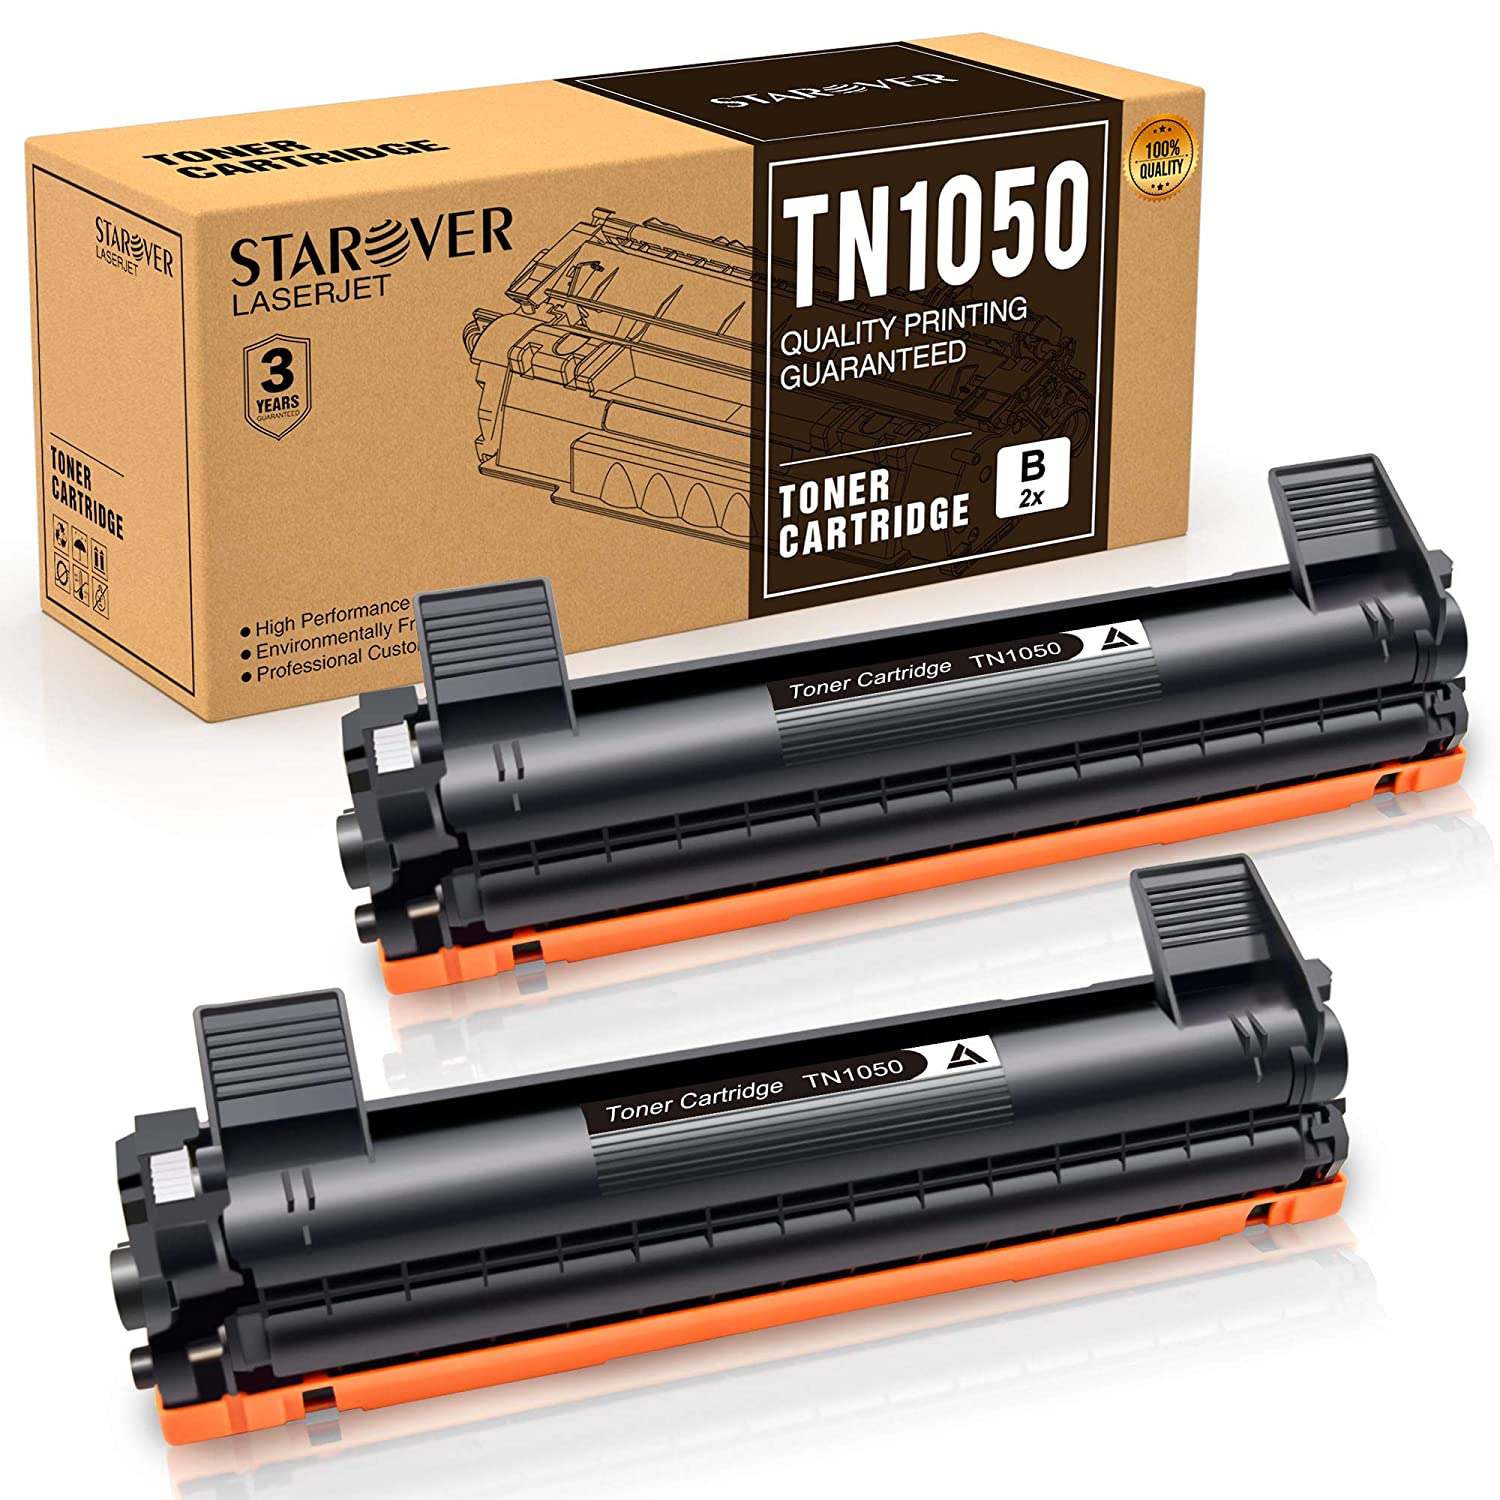 STAROVER 2x TN1050 TN-1050 Cartucho De Tóner Negro Compatible Para Brother HL-1110 DCP-1510 HL-1210W DCP-1610W HL-1112 MFC-1810 HL-1212W MFC-1910W DCP-1612W ...